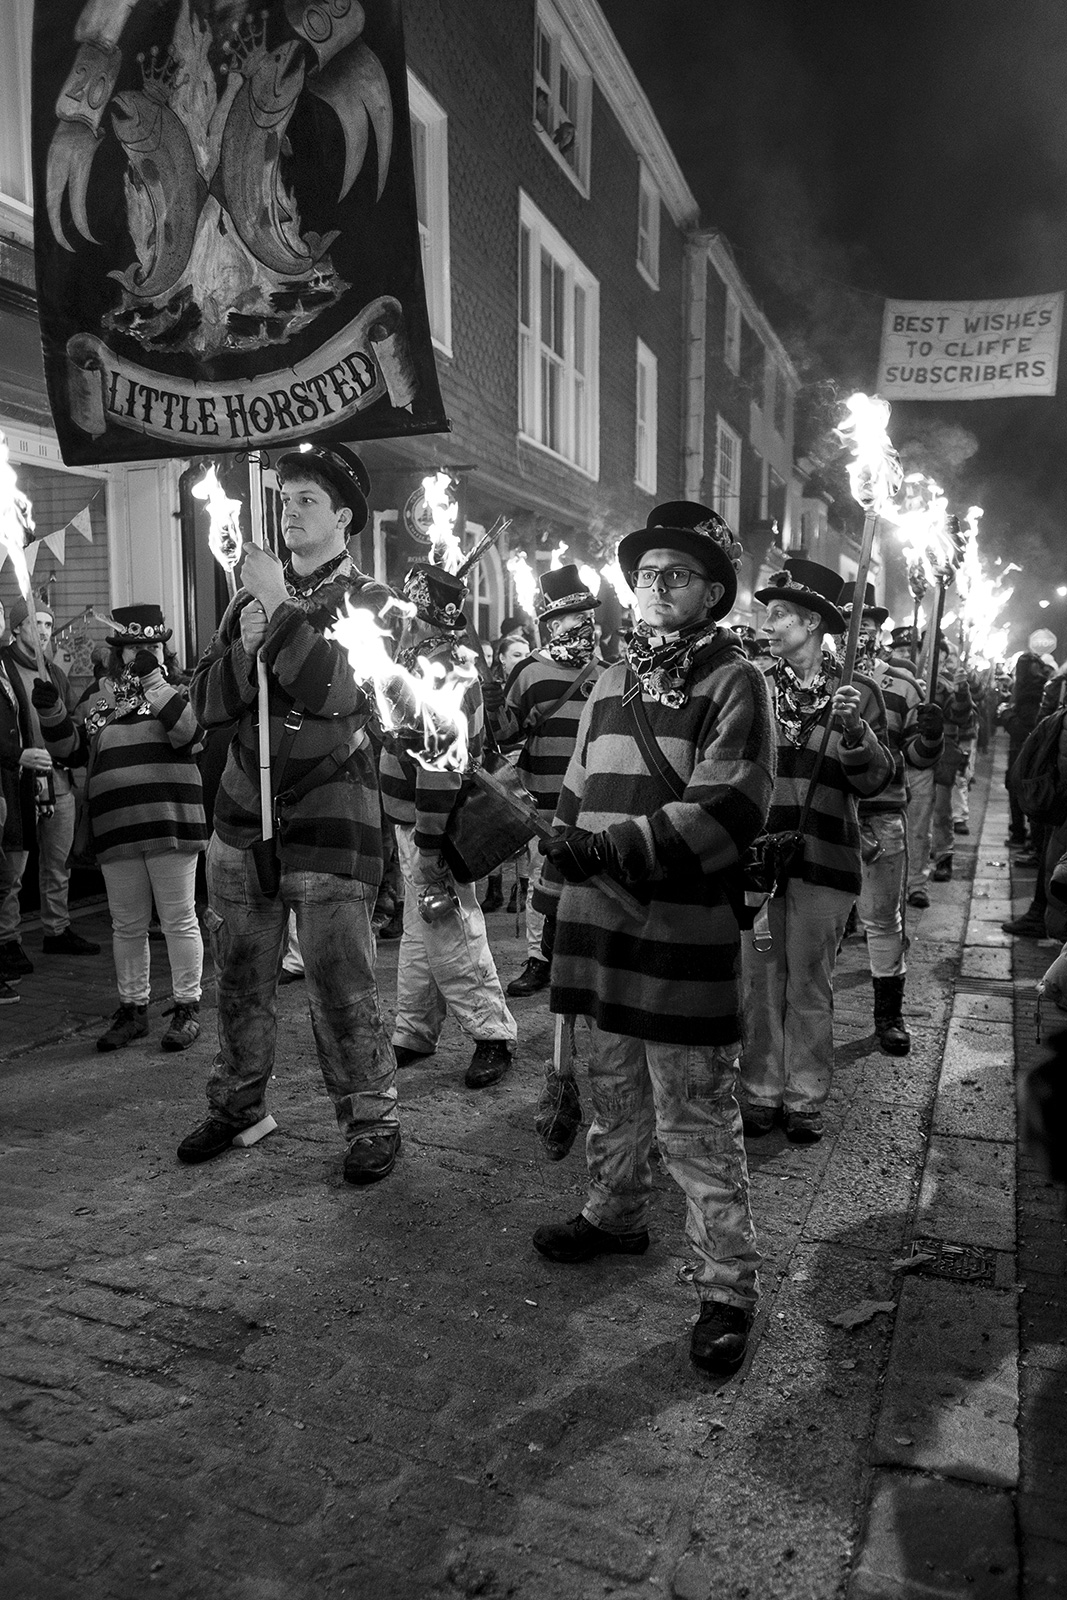 Little Horsted Male torch bearers in striped costume with burning standards Lewes bonfire night Cliffe High Street Lewes East Sussex UK, black and white night photography Britain © P. Maton 2018 eyeteeth.net